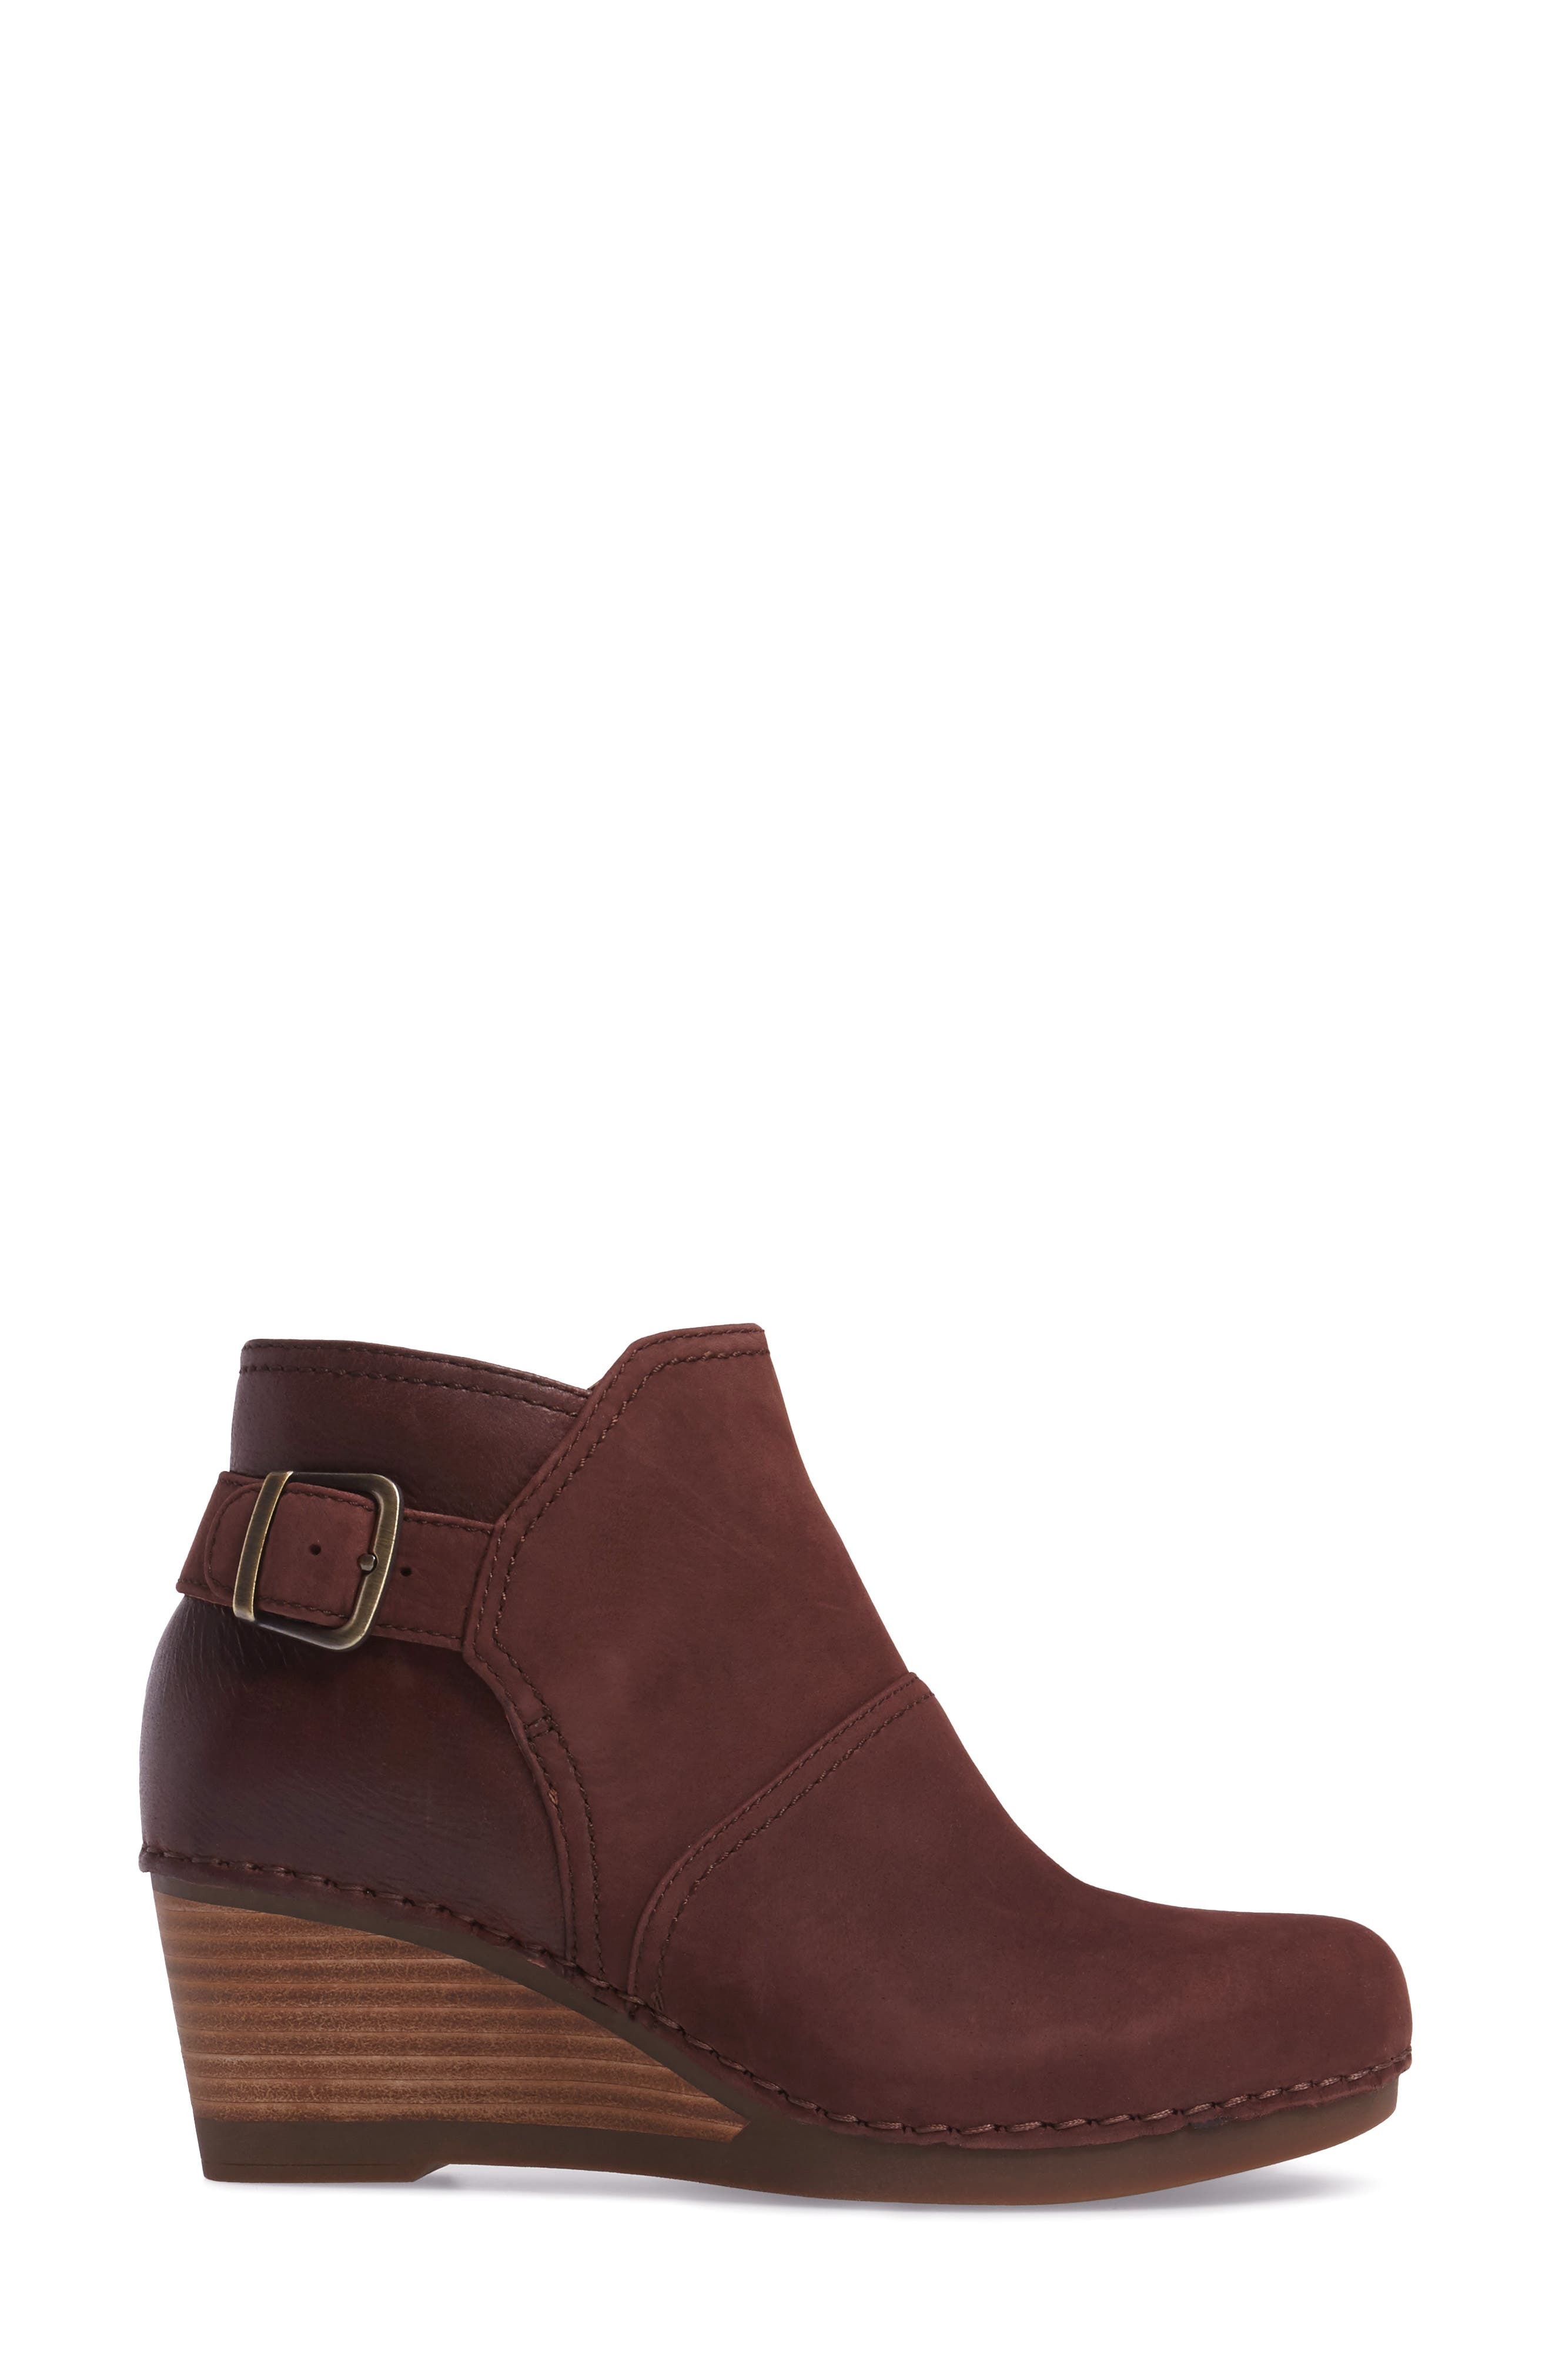 'Shirley' Wedge Bootie,                             Alternate thumbnail 15, color,